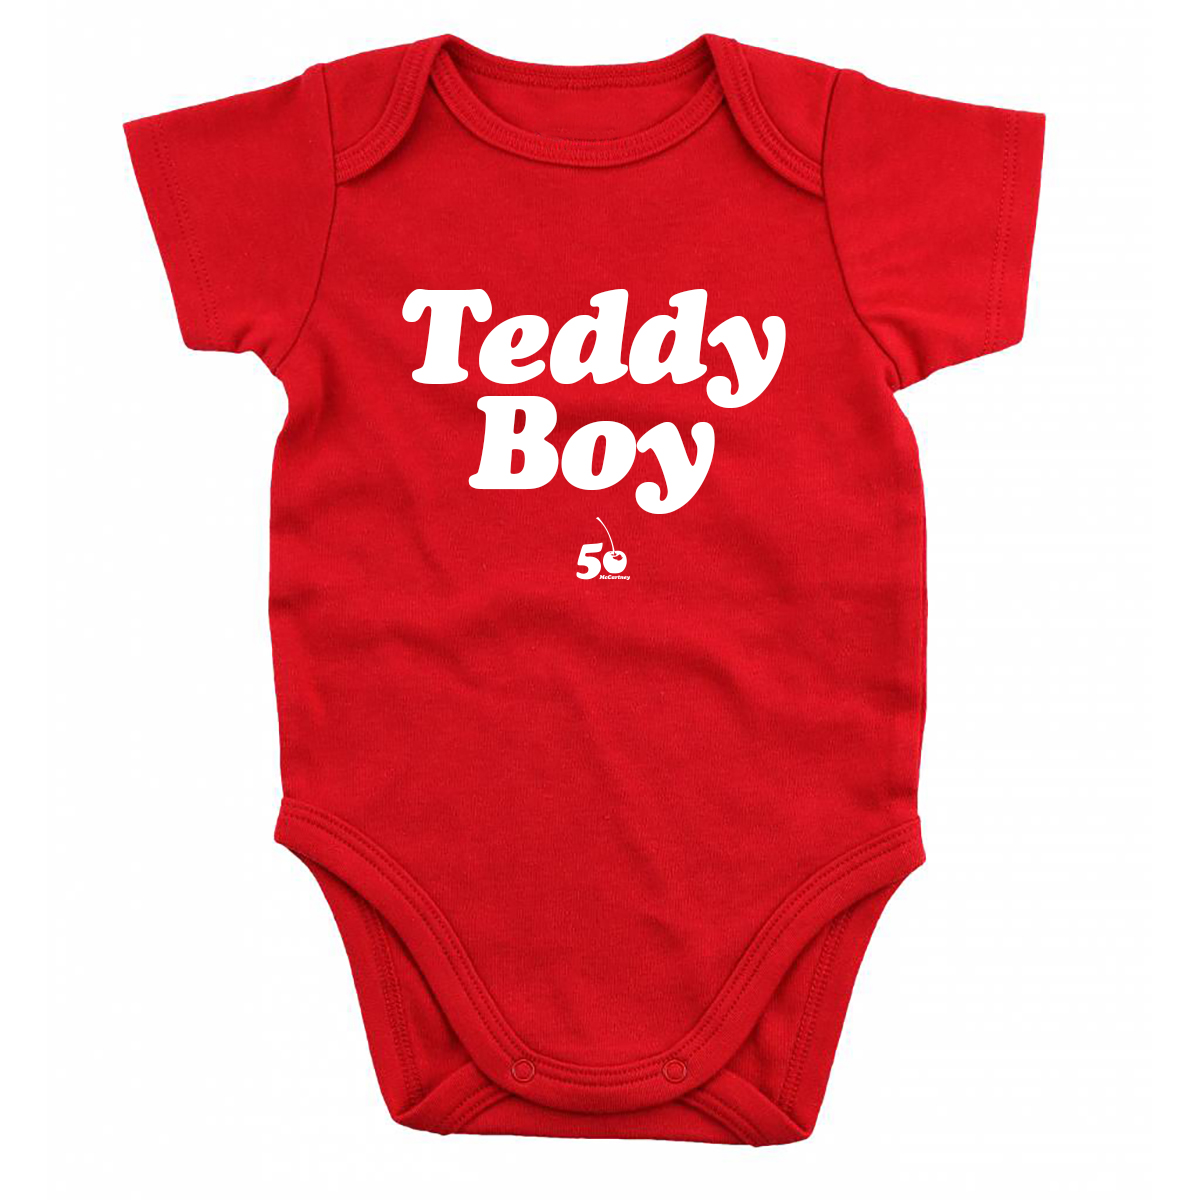 Teddy Boy Onesie